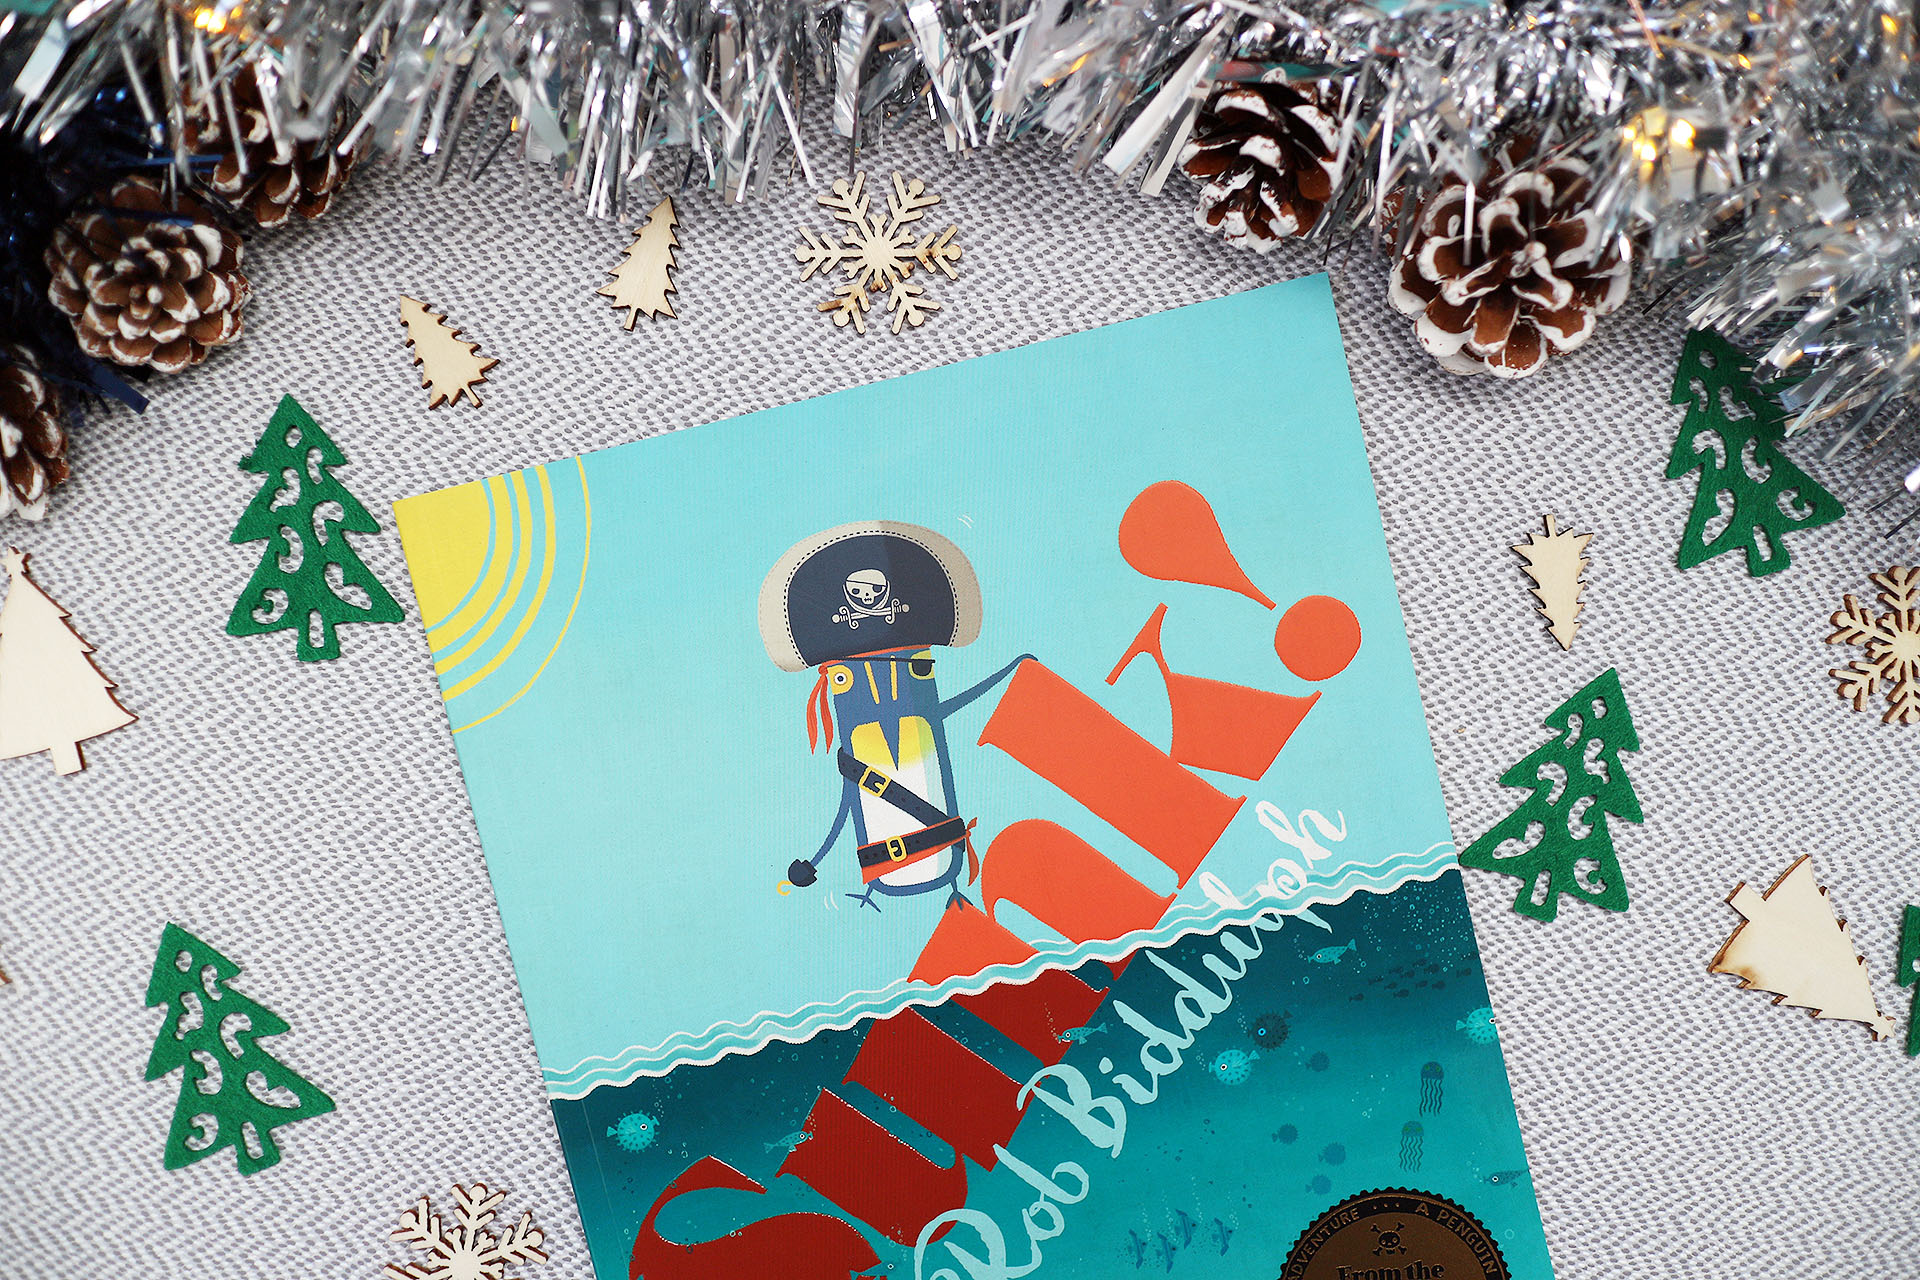 Sunk! by Rob Biddulph - a book, part of my Christmas gift guide